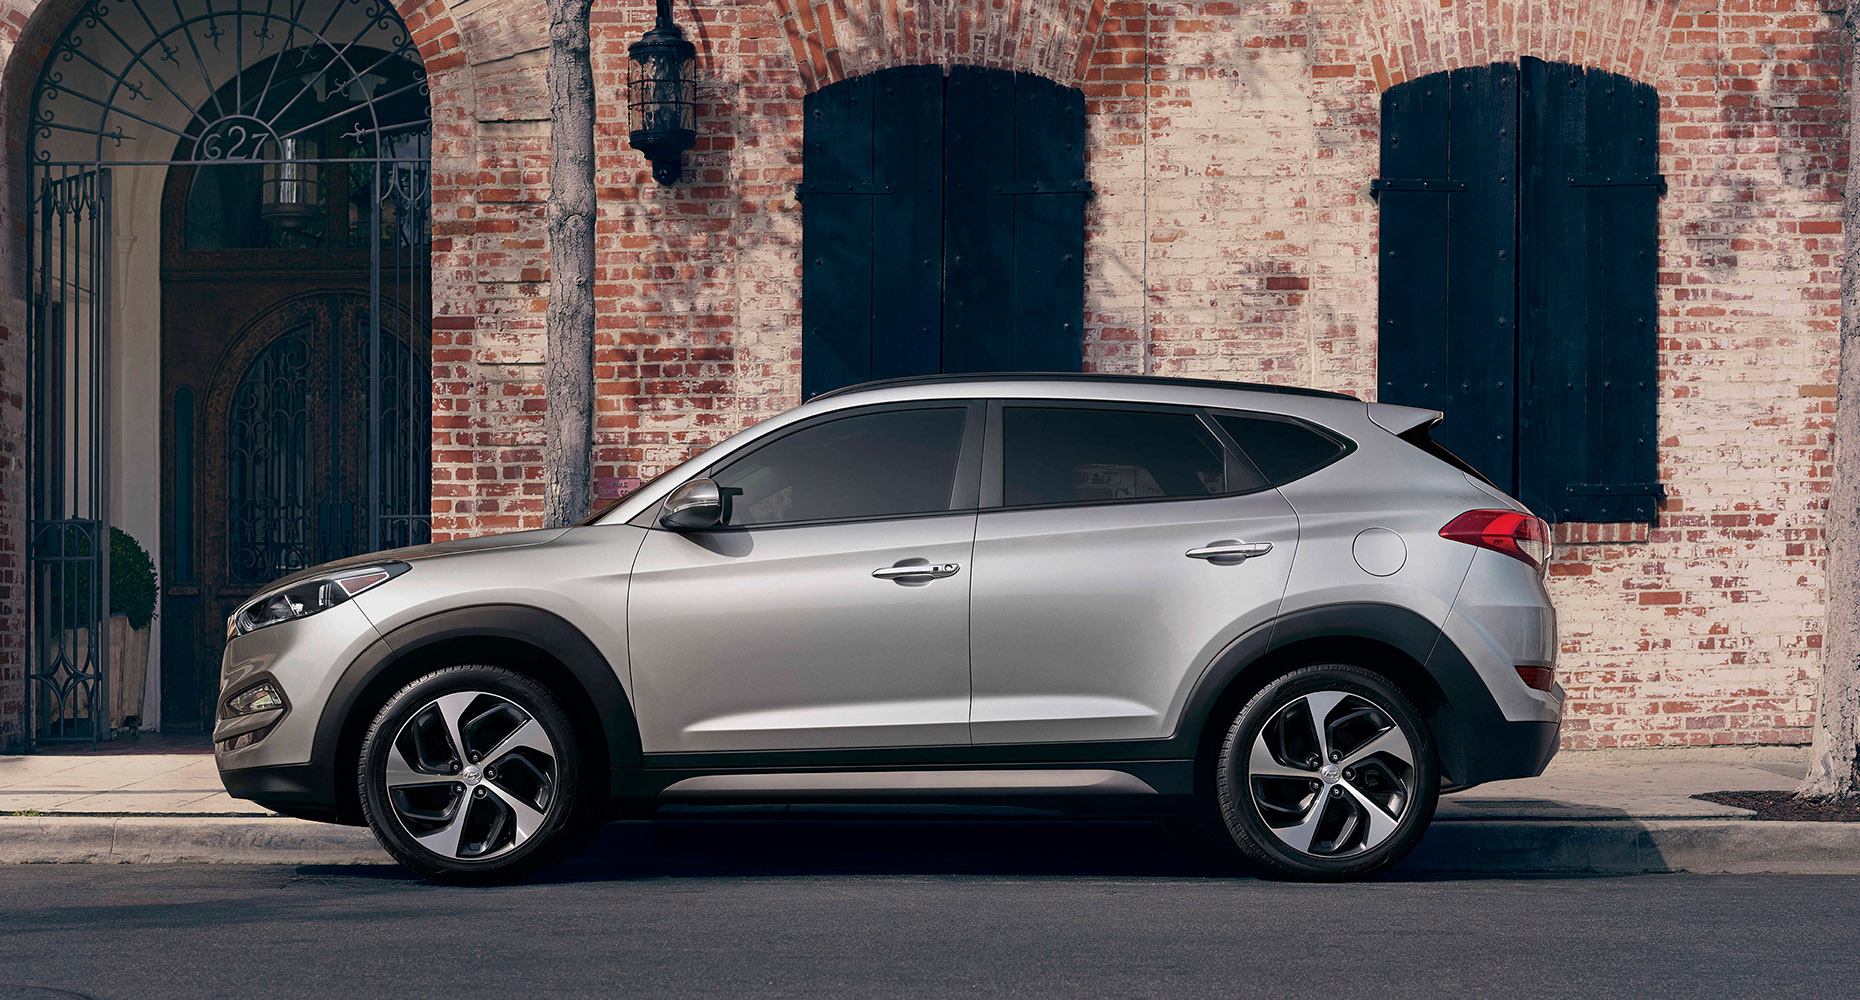 exterior image of silver hyundai tucson 2017 cuv with silver lining and tinted windows. Black Bedroom Furniture Sets. Home Design Ideas